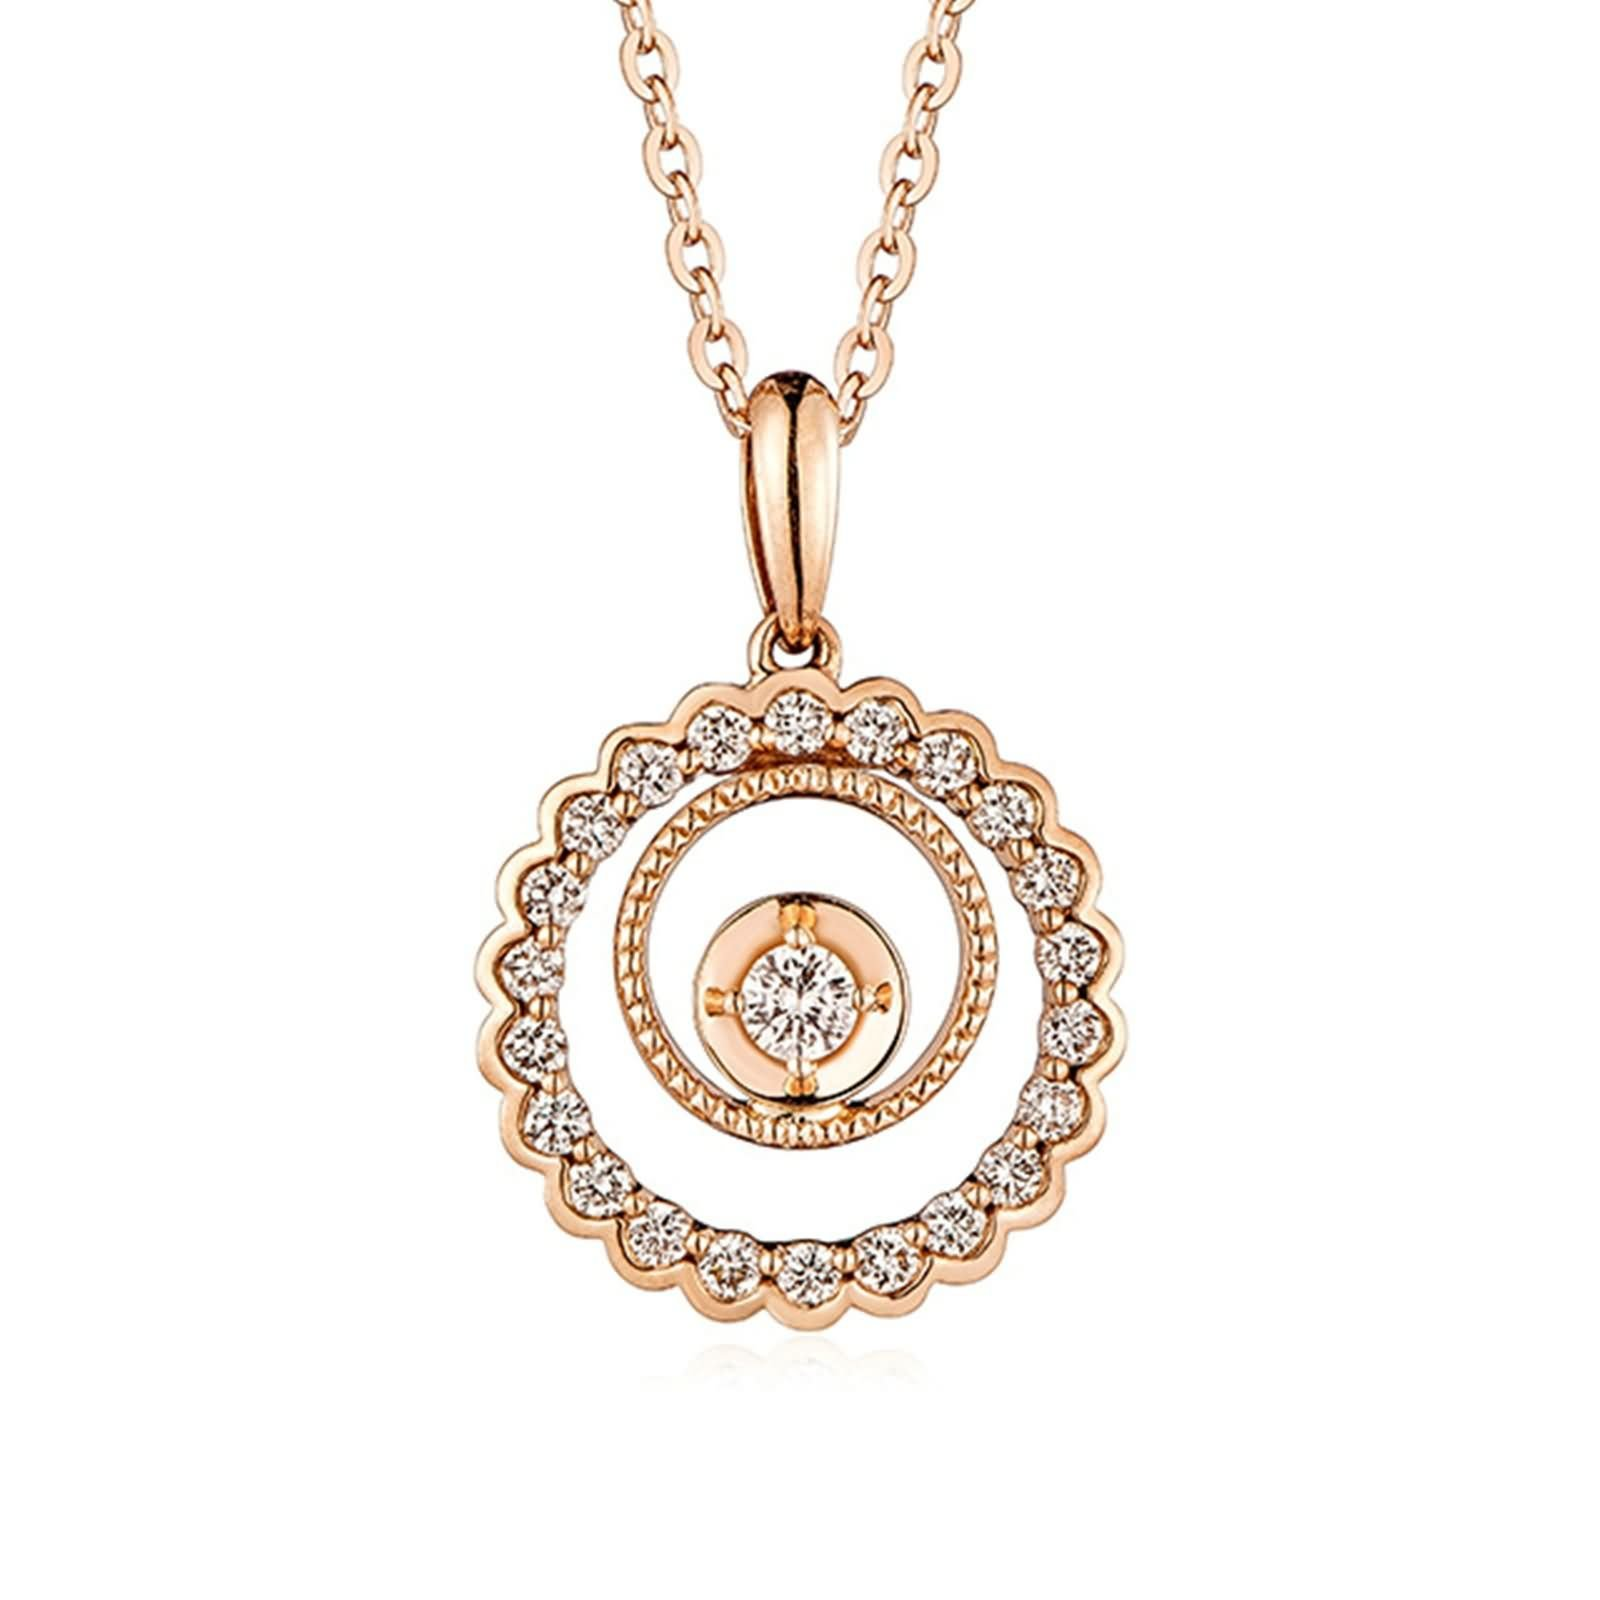 Real 18K Rose Gold Diamond Pendant Circle Necklace Birthday Women Jewelry Gift